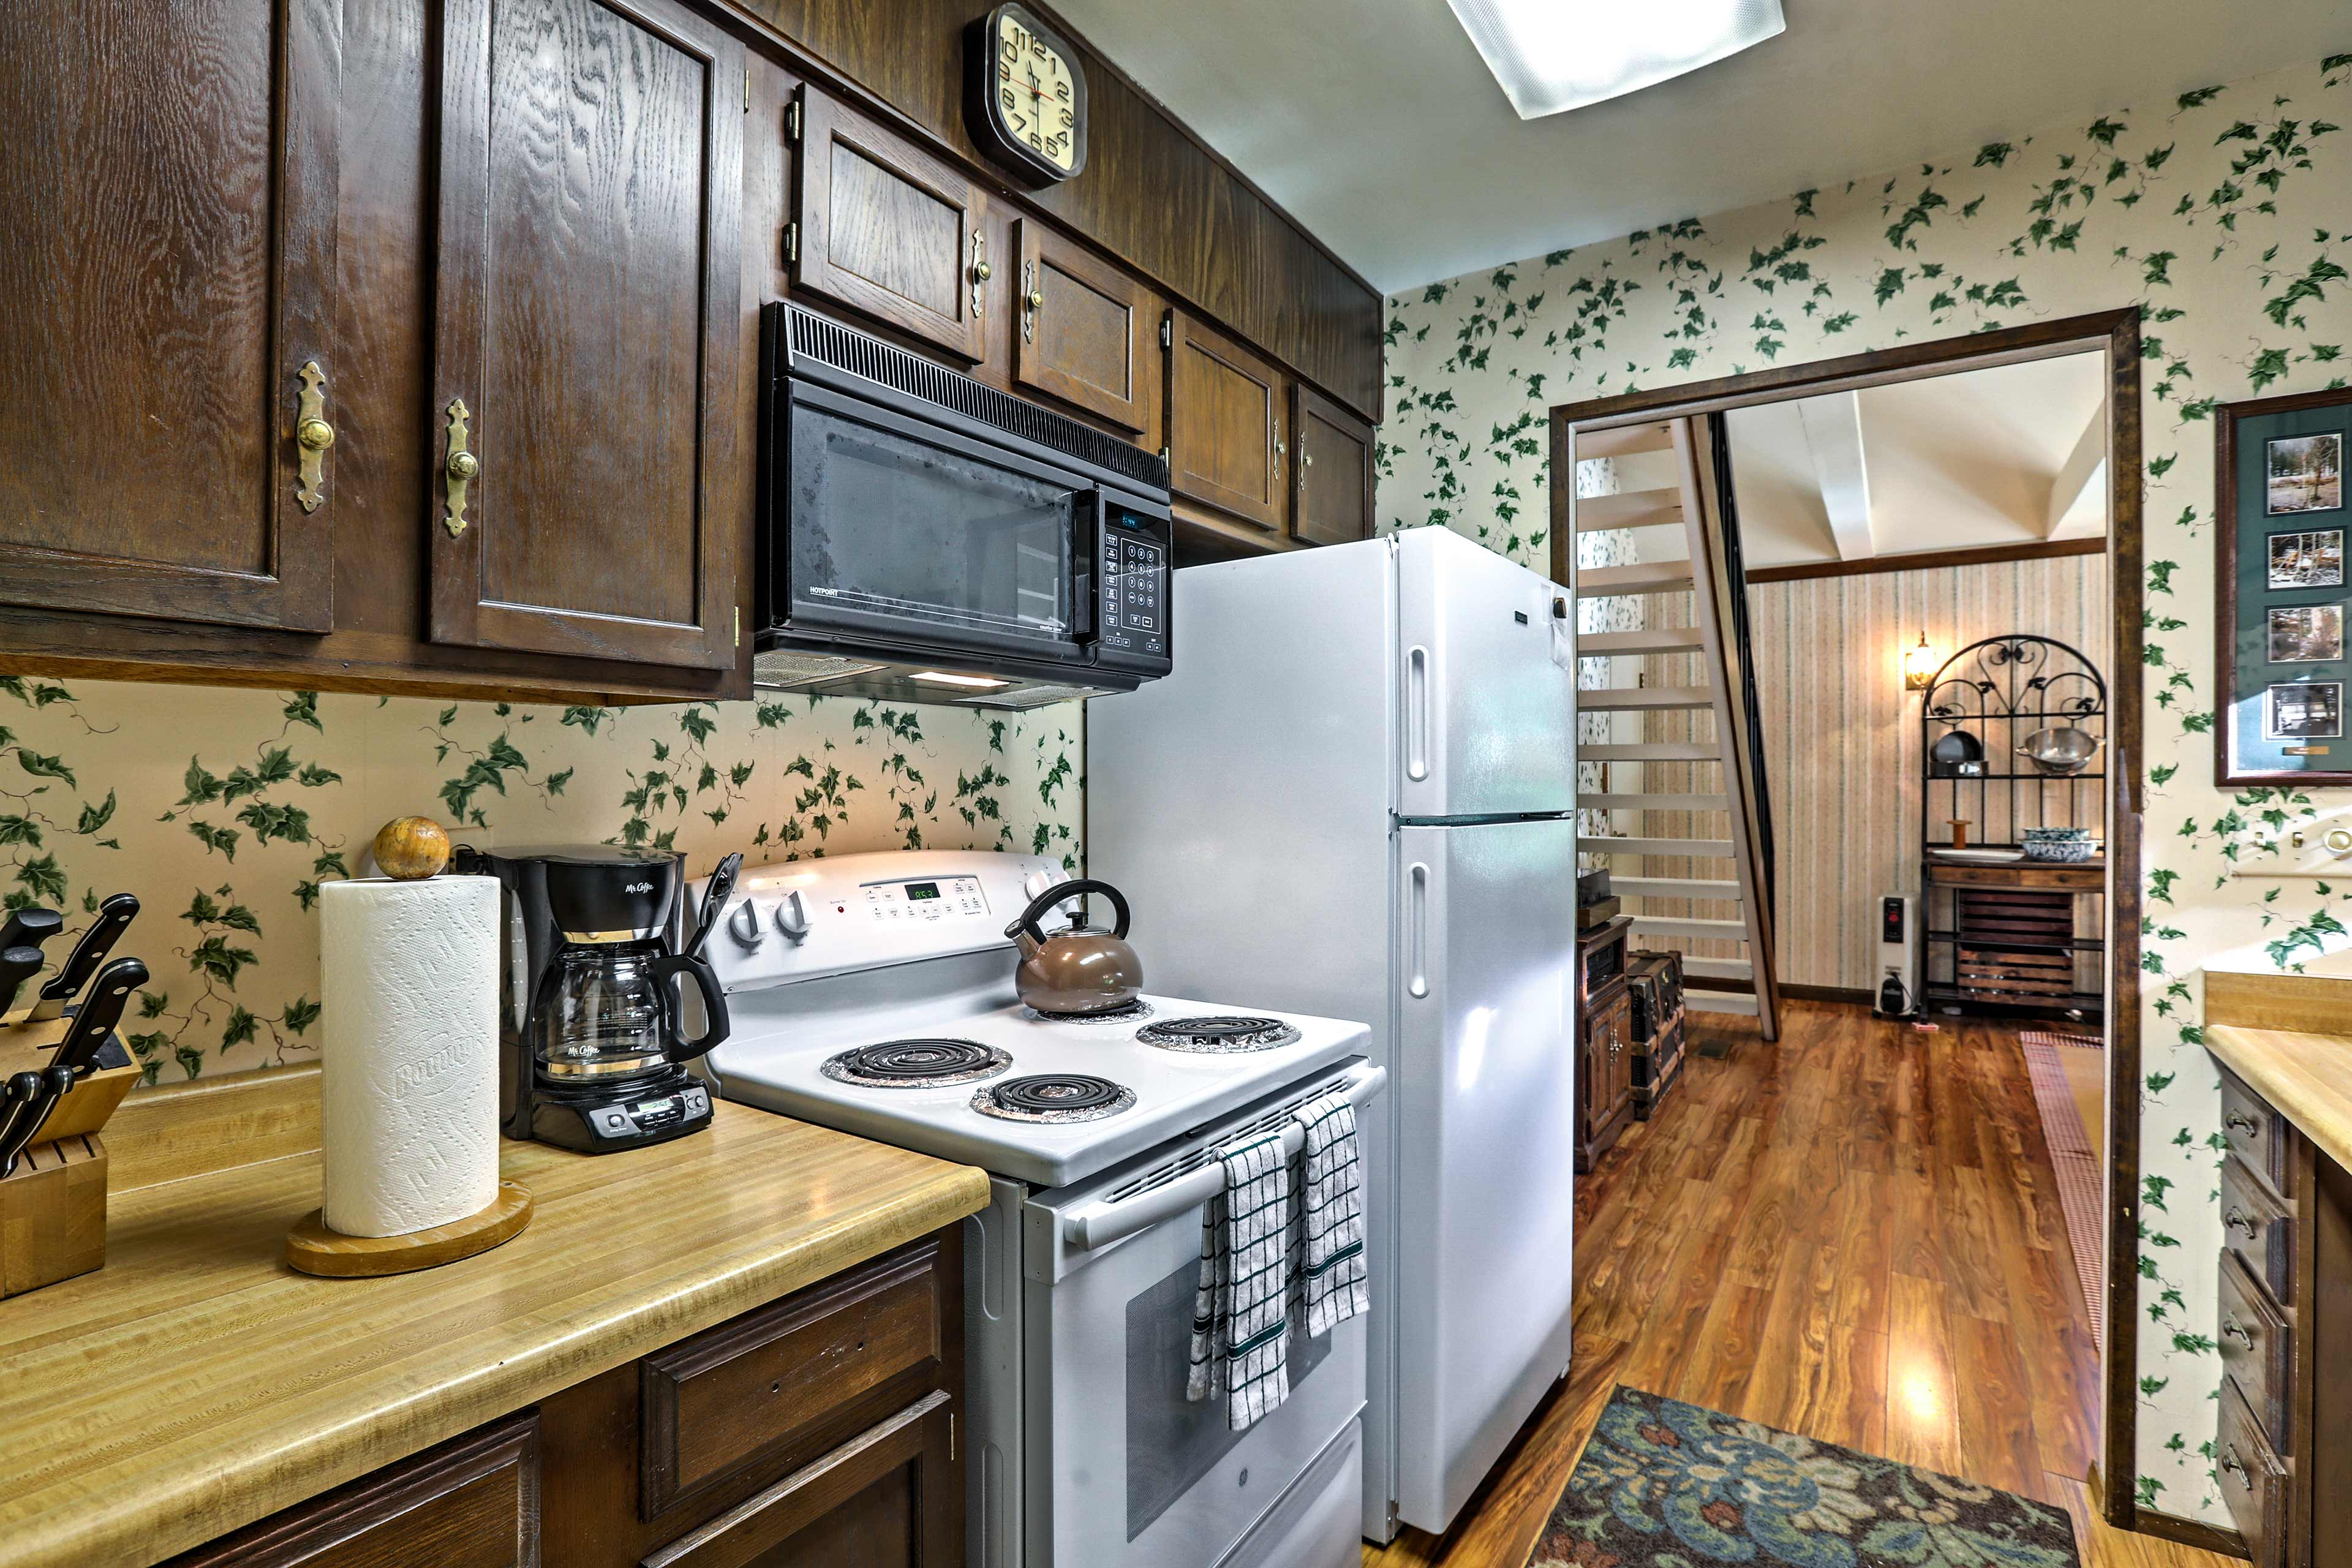 You'll find natural wood cabinetry and all updated appliances here.